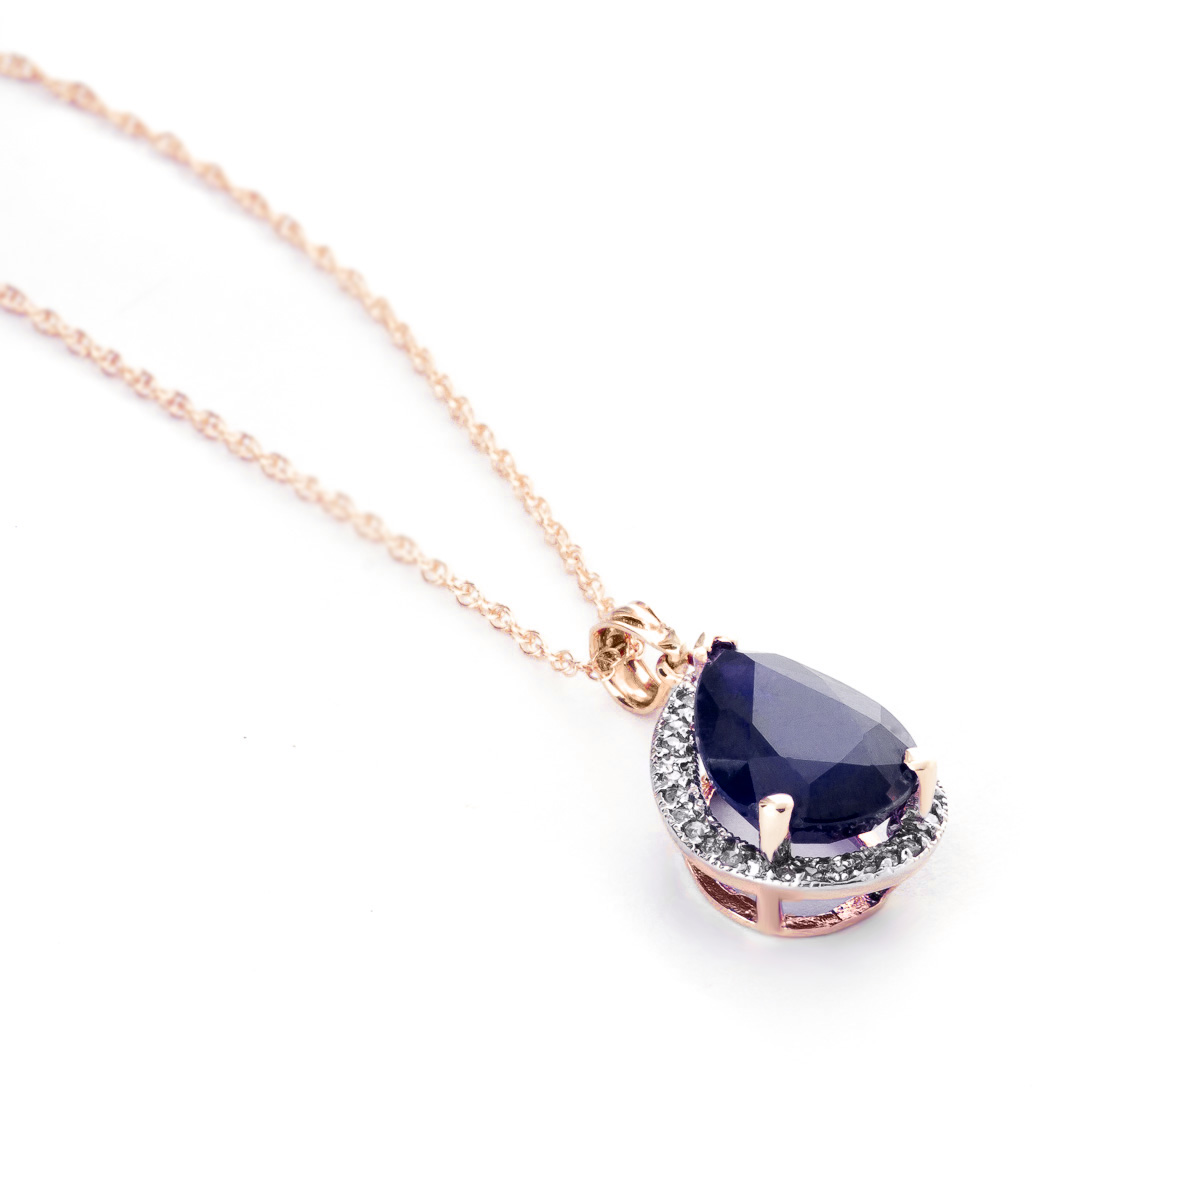 Sapphire and Diamond Halo Pendant Necklace 5.1ct in 9ct Rose Gold